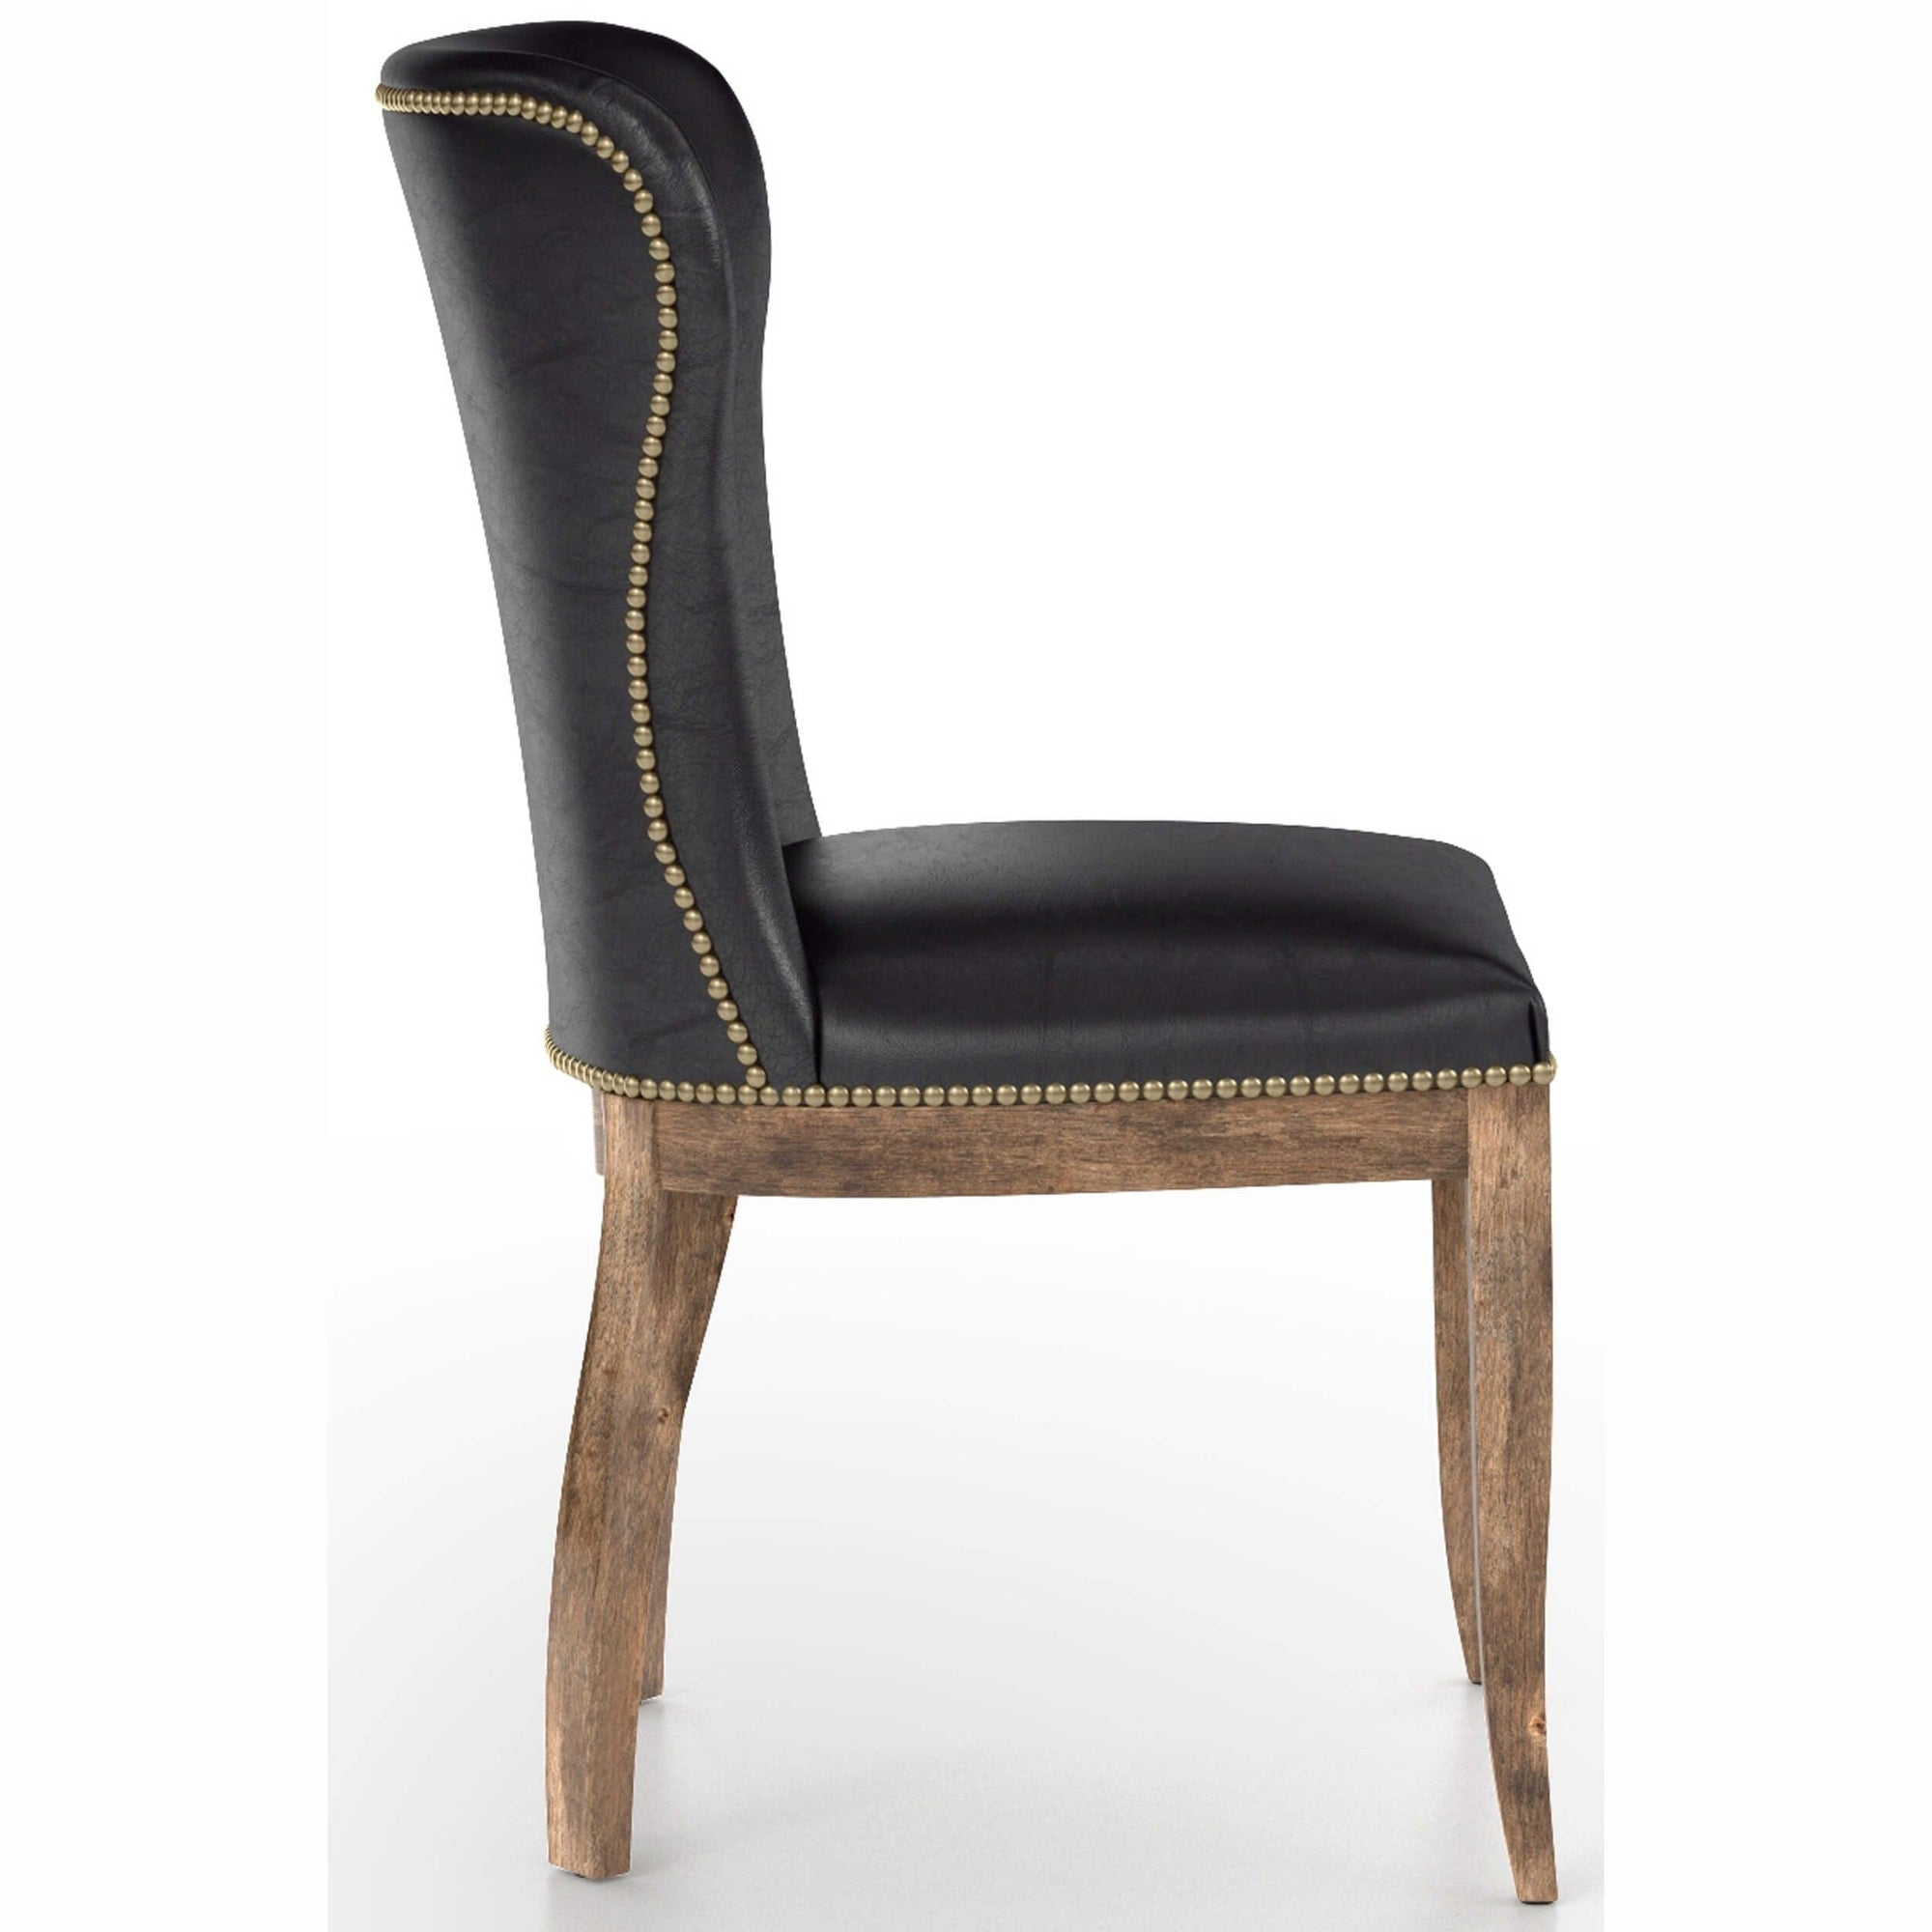 Astounding Richmond Leather Dining Chair Old Saddle Black High Ibusinesslaw Wood Chair Design Ideas Ibusinesslaworg